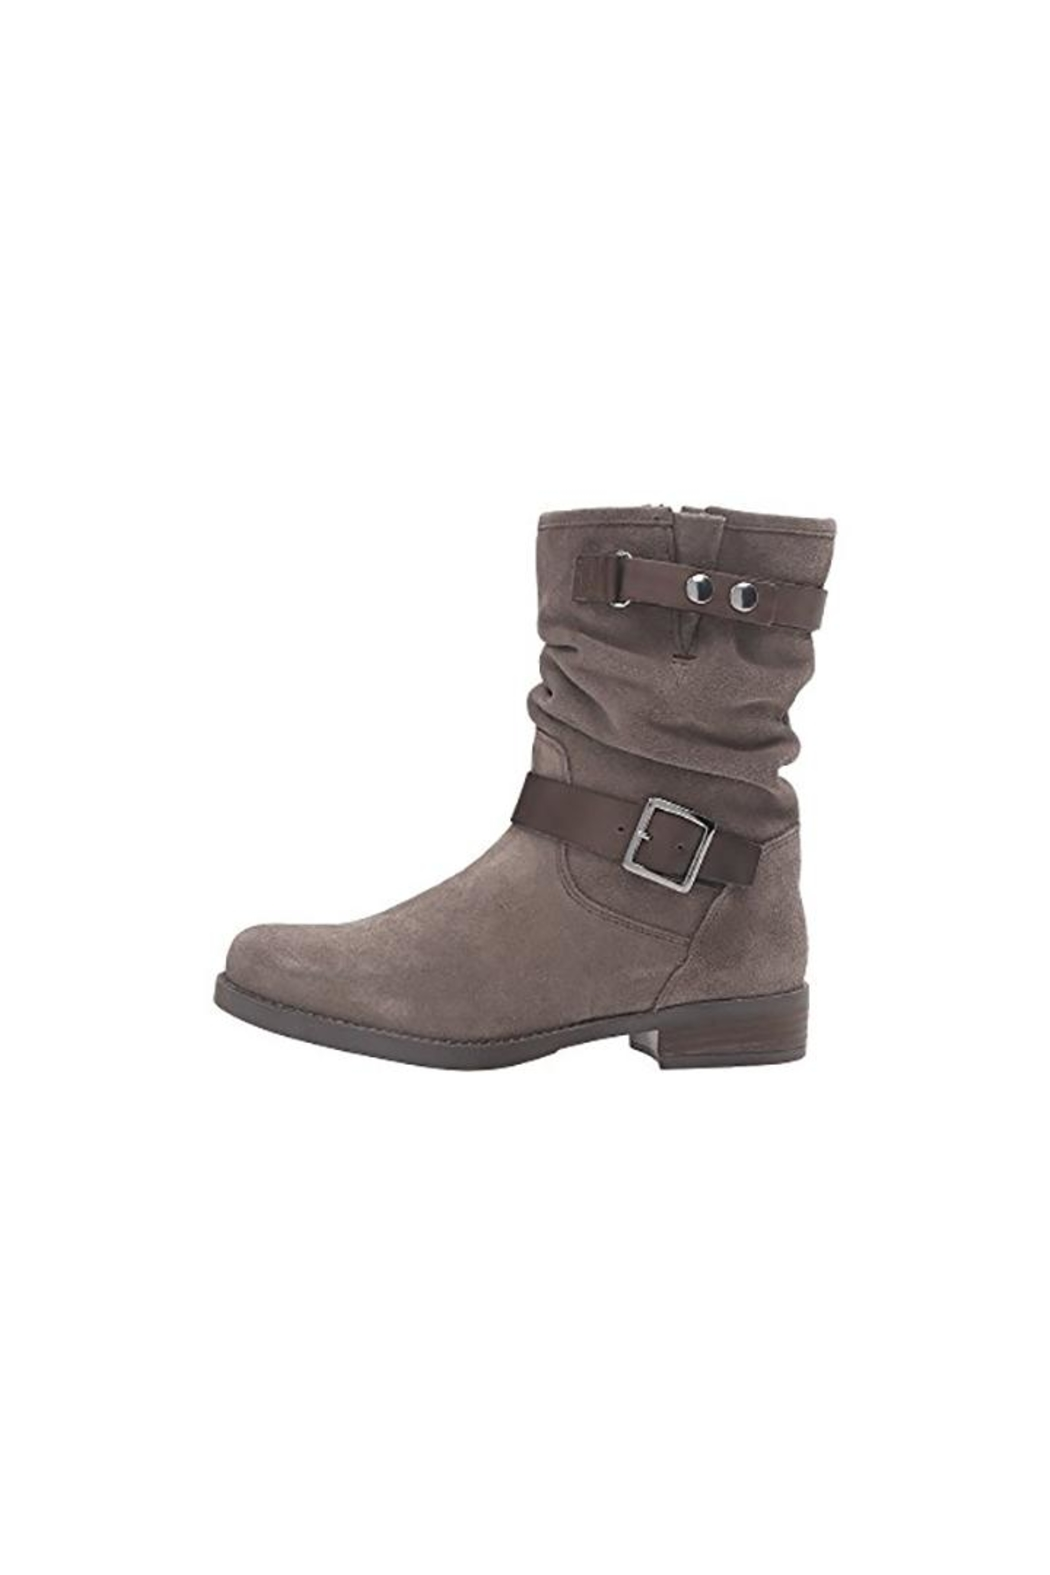 Eric Michael Venice Suede Slouch-Boot - Main Image